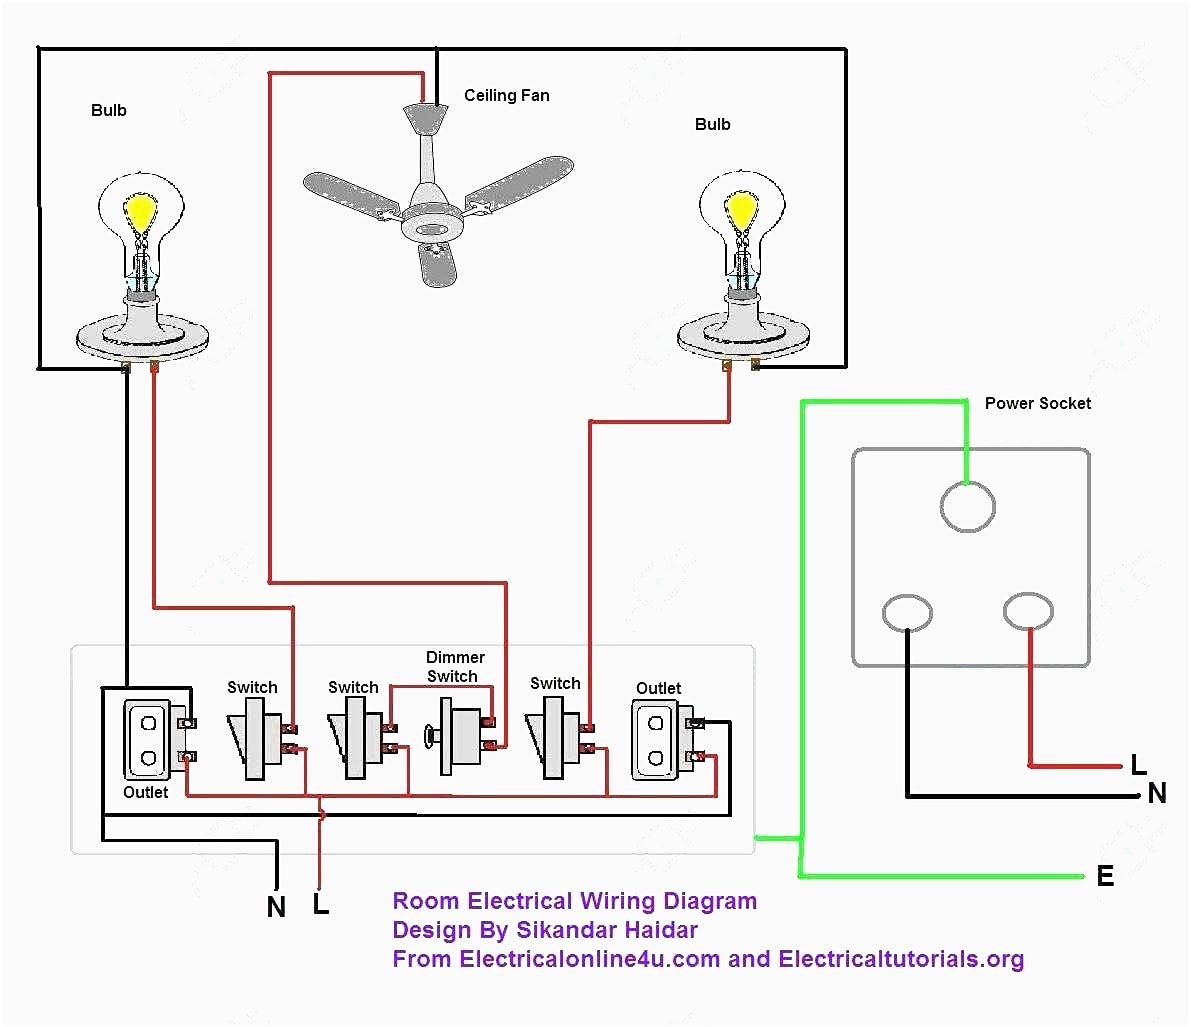 house wiring codes little wiring diagrams electrical transformers pdf house wiring codes ver wiring diagram home electrical wiring color code electrical house wiring codes wiring